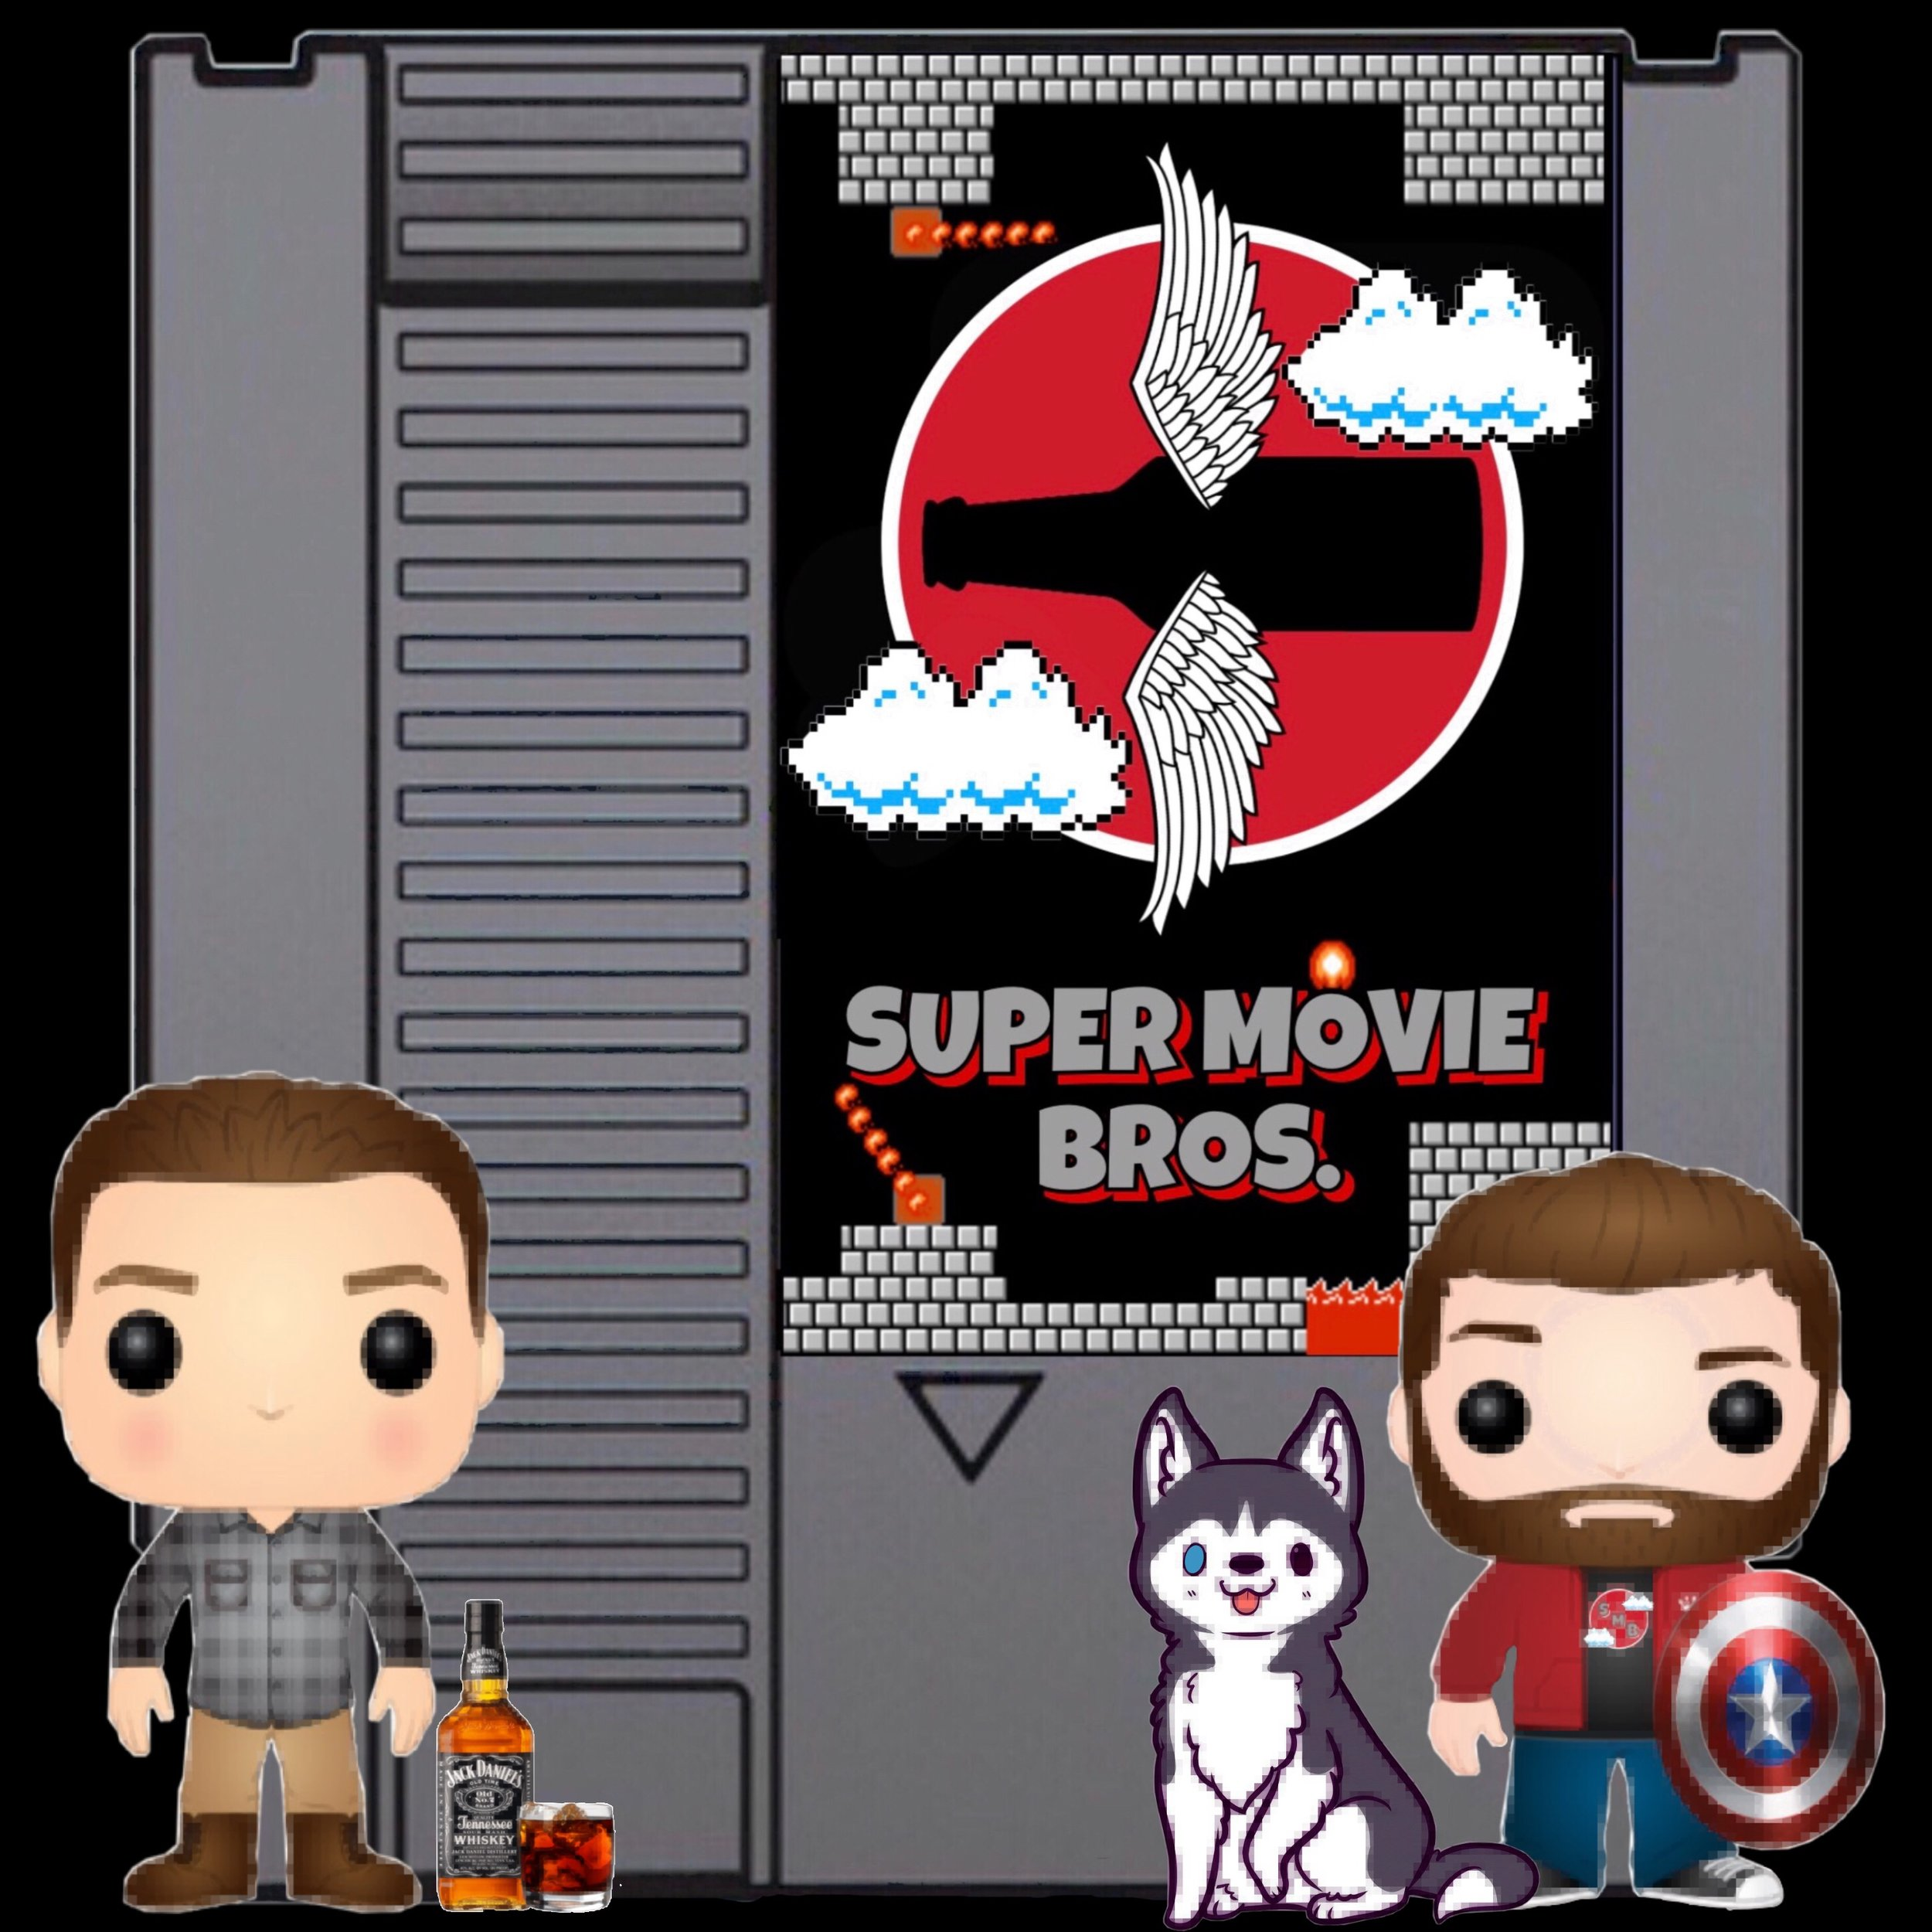 - A weekly show that focuses on current topics in geek film news. Hosts Dave and Jay will go through their week and discuss a wide range of topics including reviews, spotlights on classic films, Top 5 lists, movie trailer reactions, & Indie Film reviews. All this w/craft beer reviews and a ton of laughs (mostly at Jays expense) too.